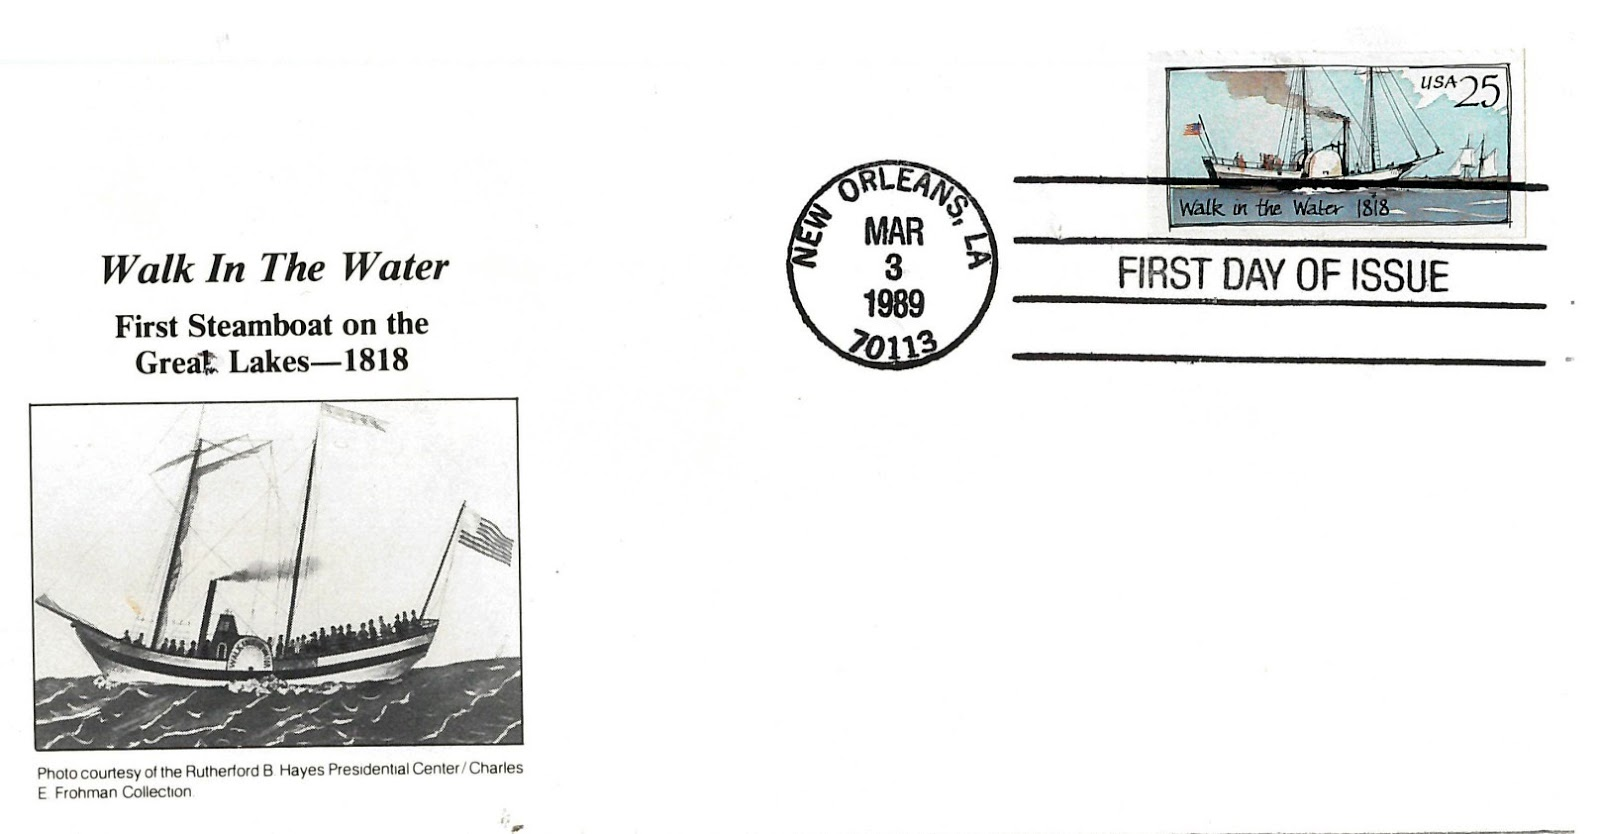 Sandusky History Walk In The Water Featured On U S Postage Stamp